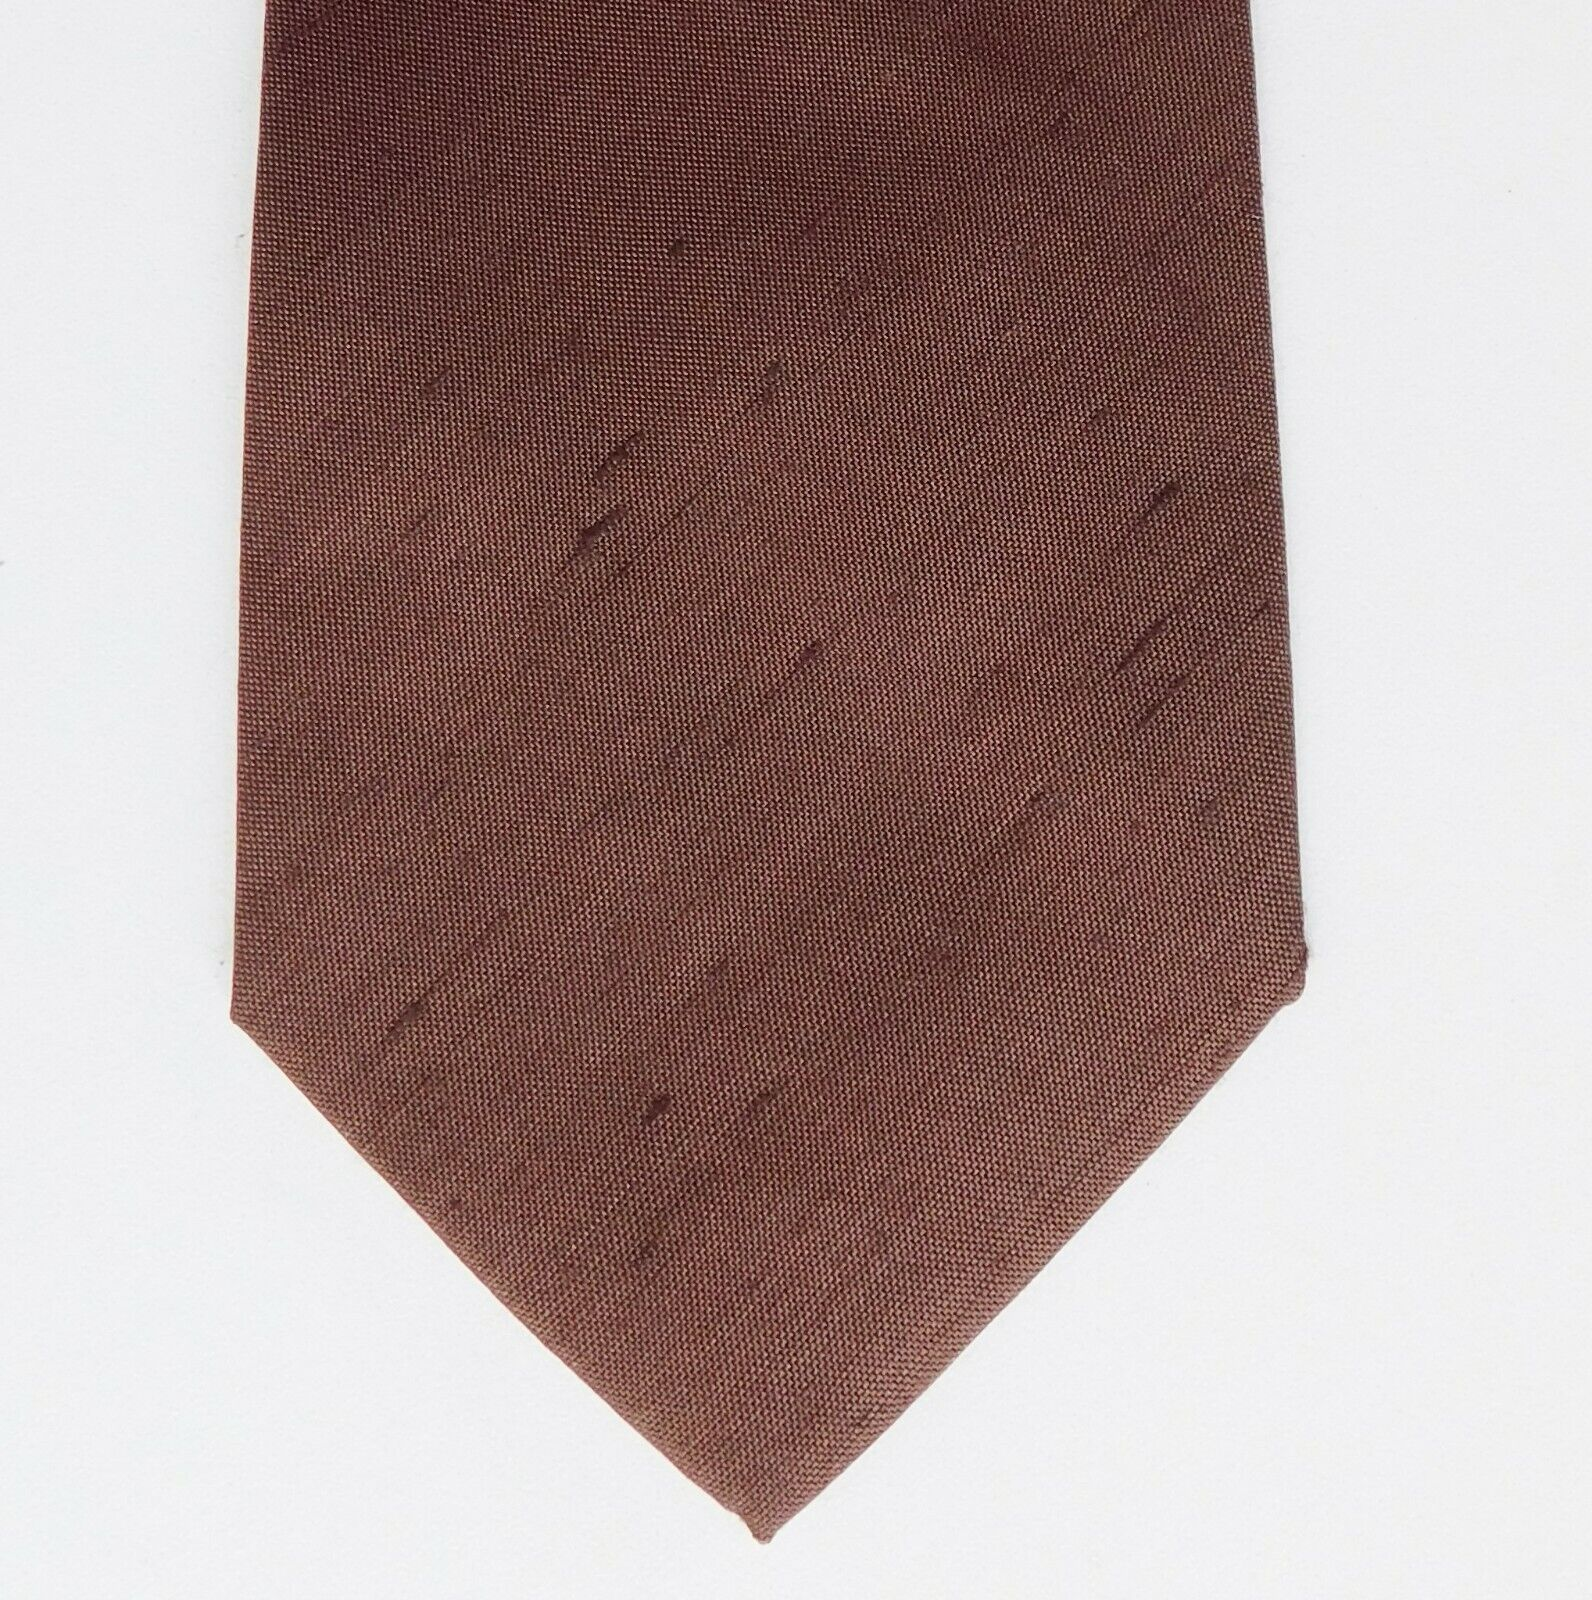 Textured silk tie NEW by Jose Piscador made in Belgium brown pure silk